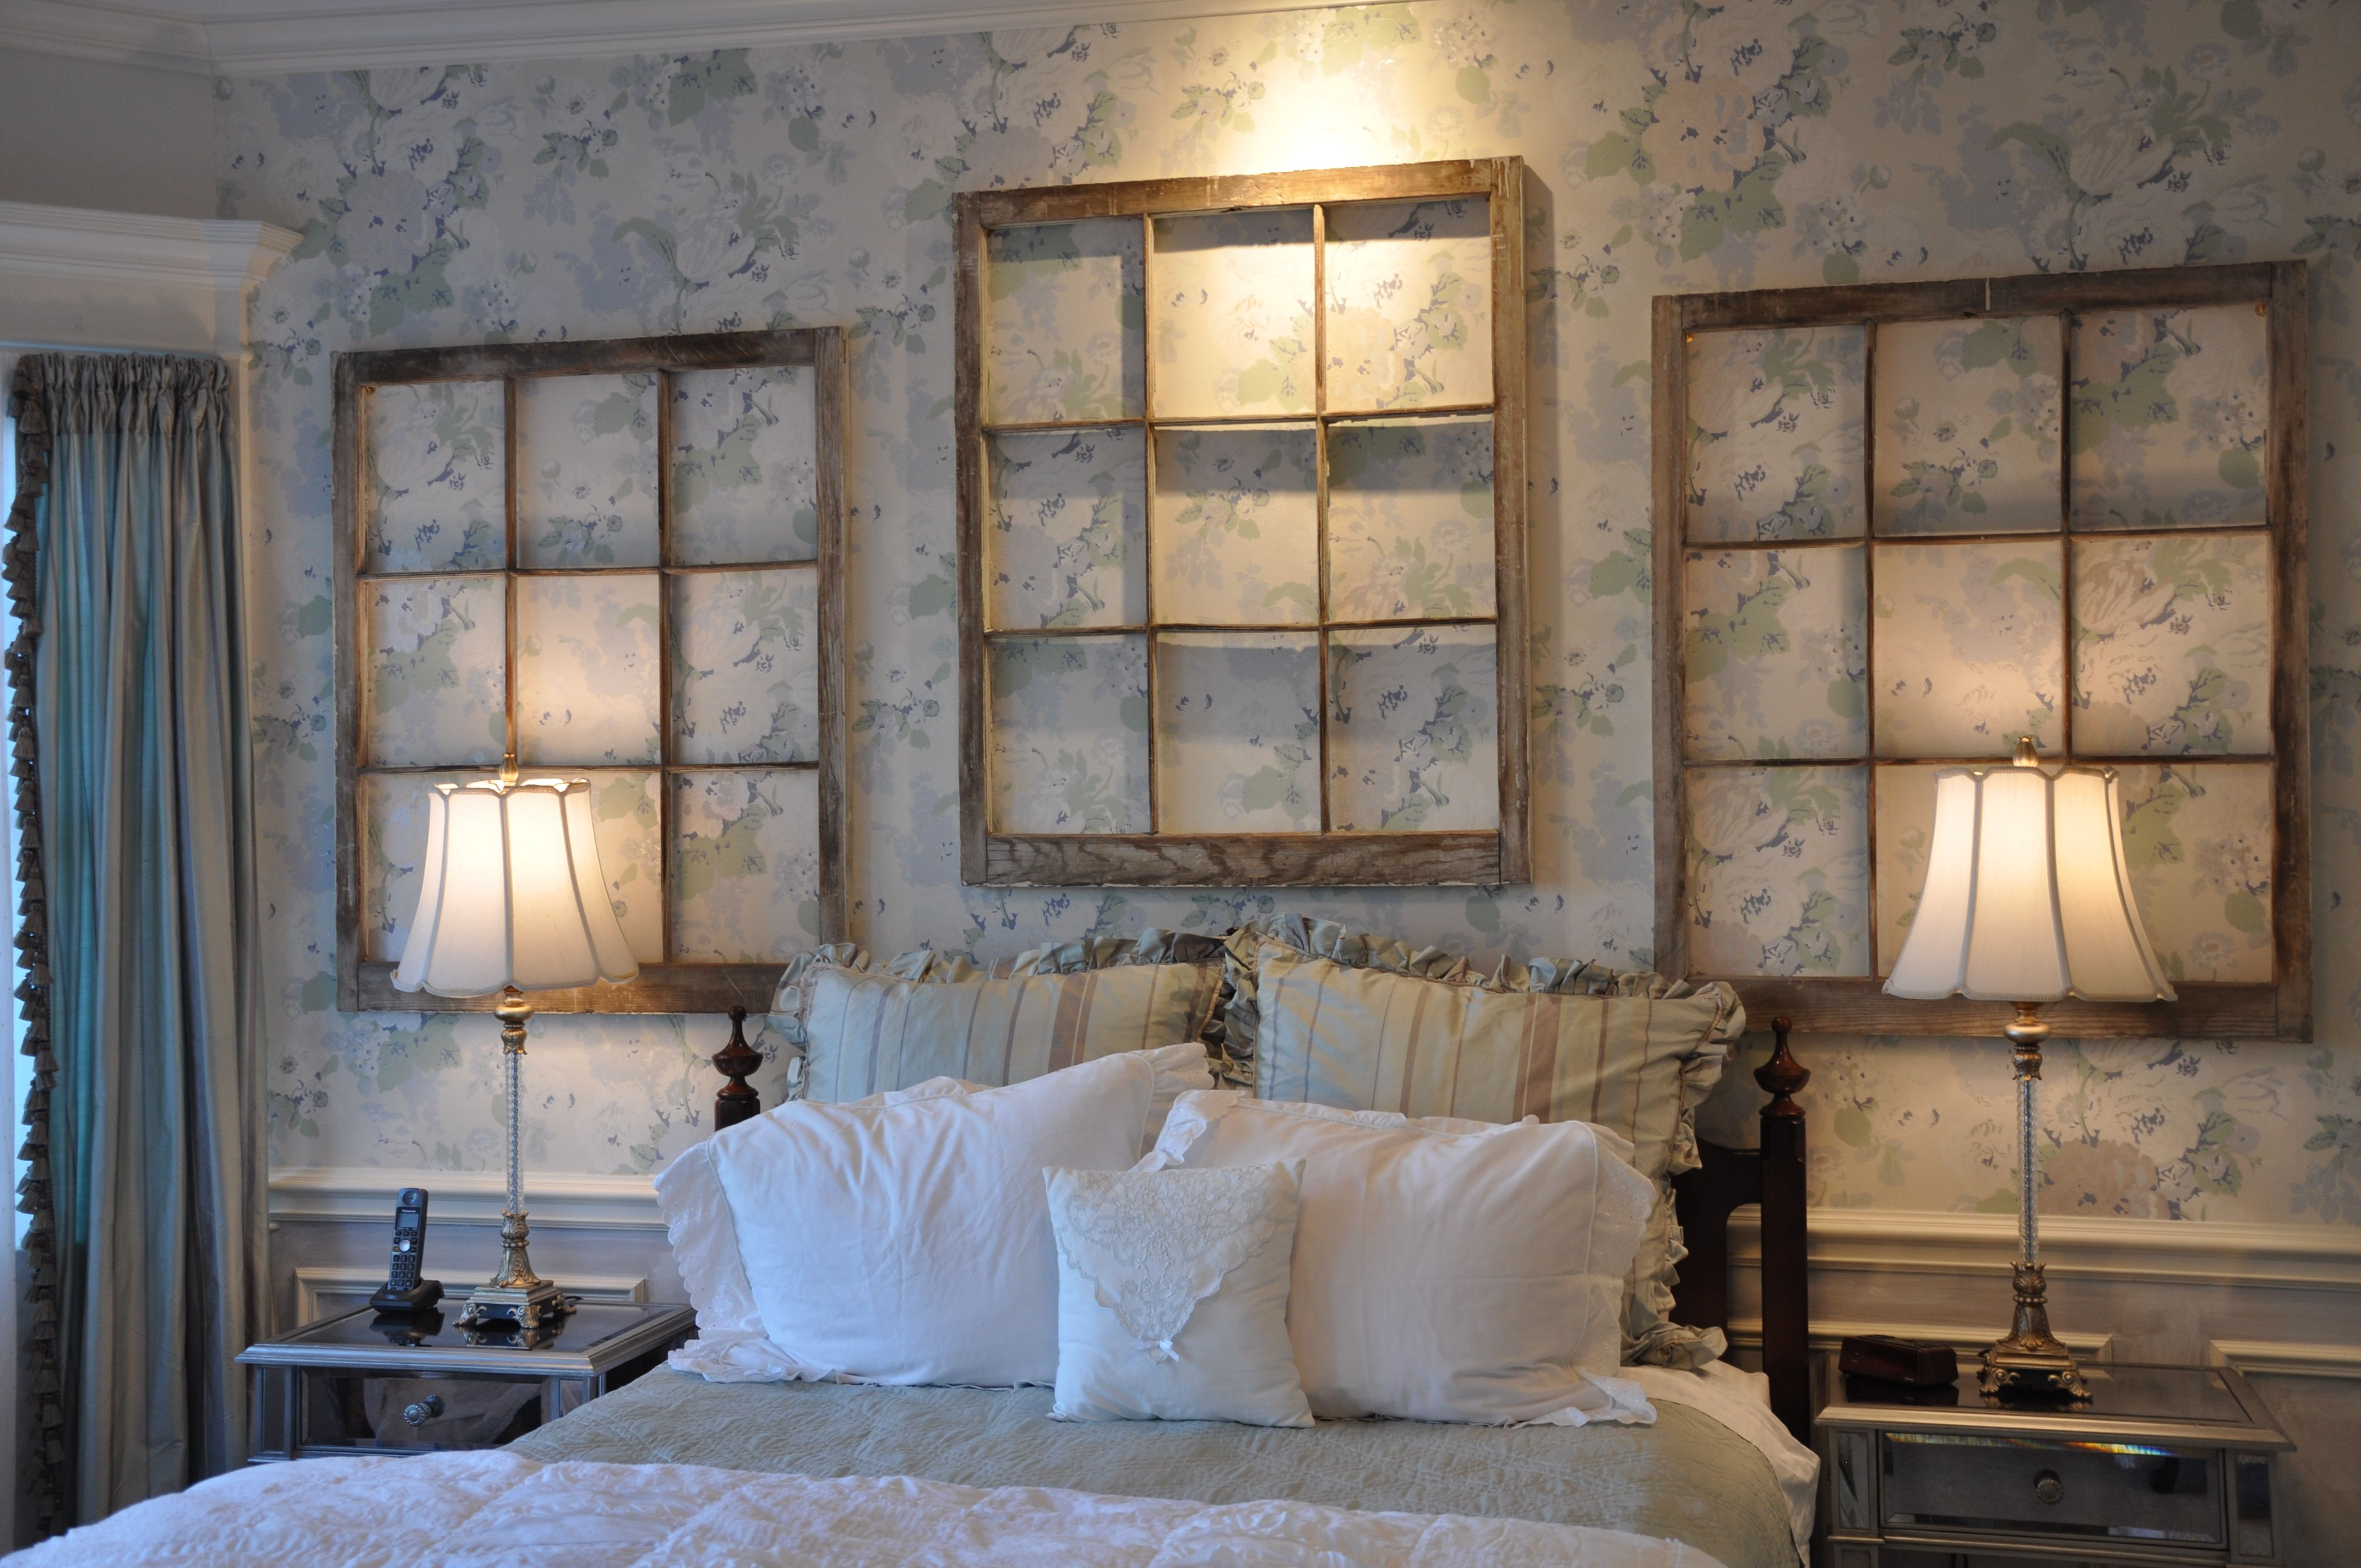 Old window over bed  old windows  wall grouping  industrial wall hanging  pinterest